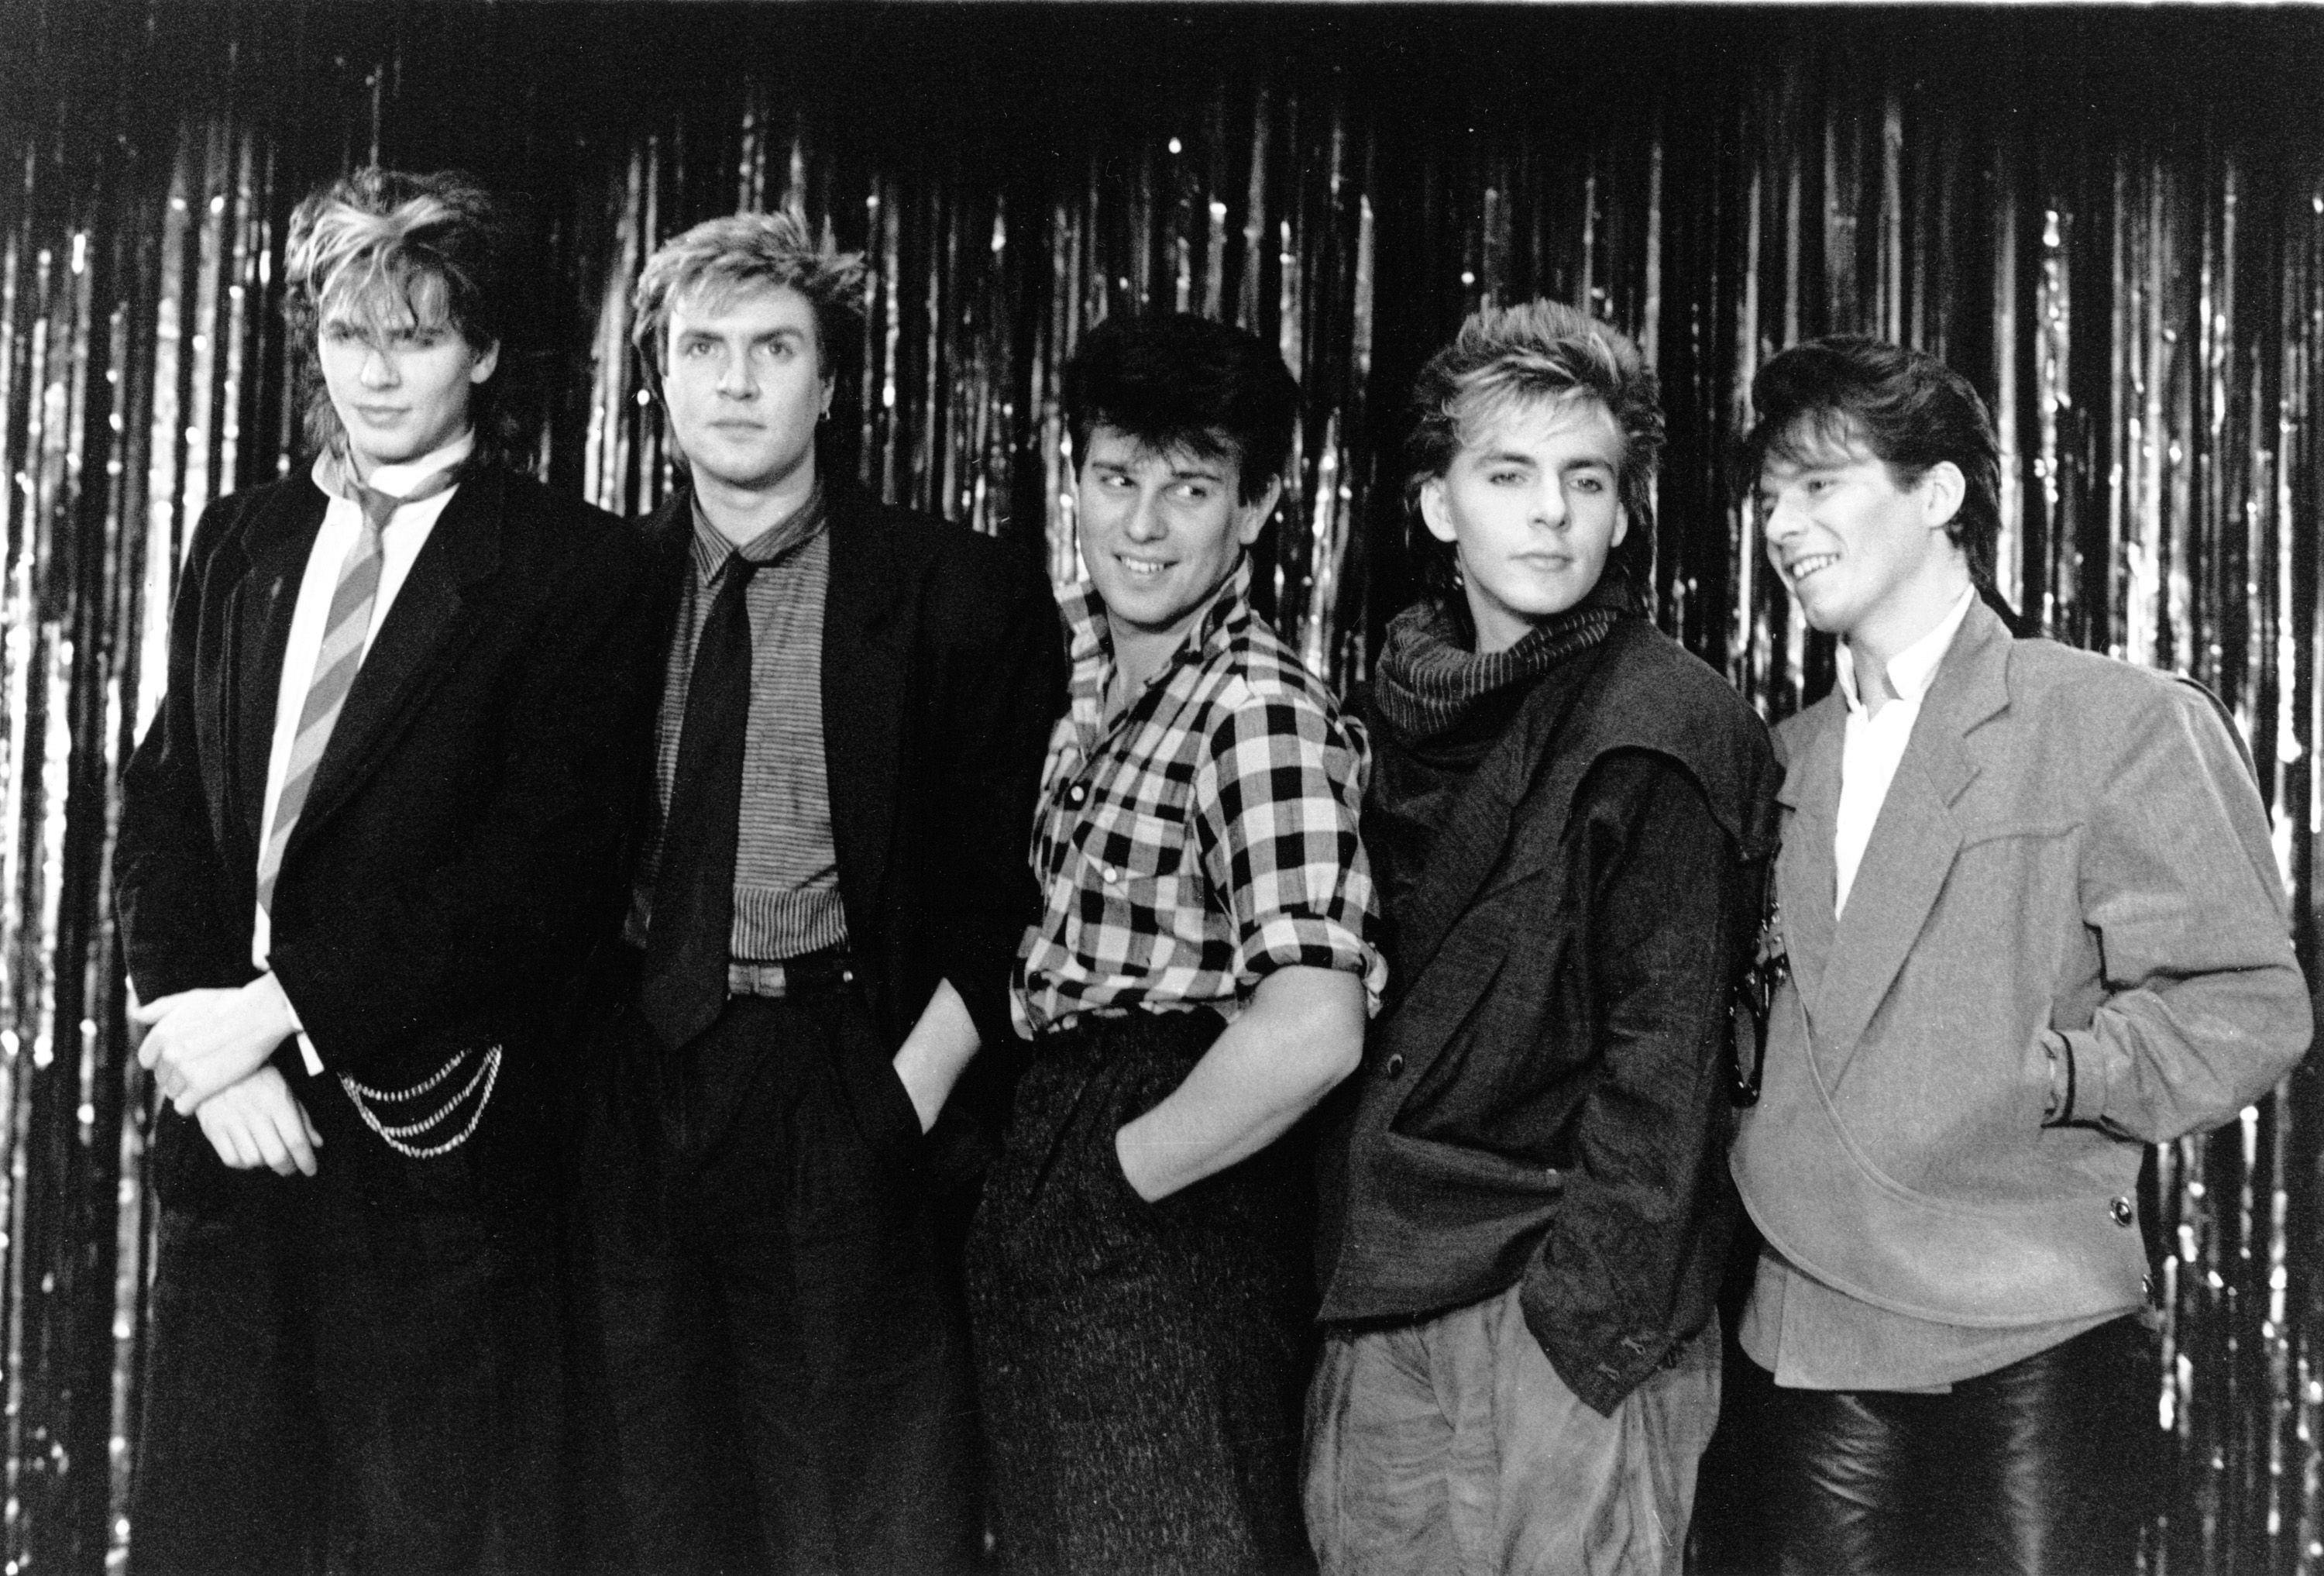 Duran Duran in the 1980's